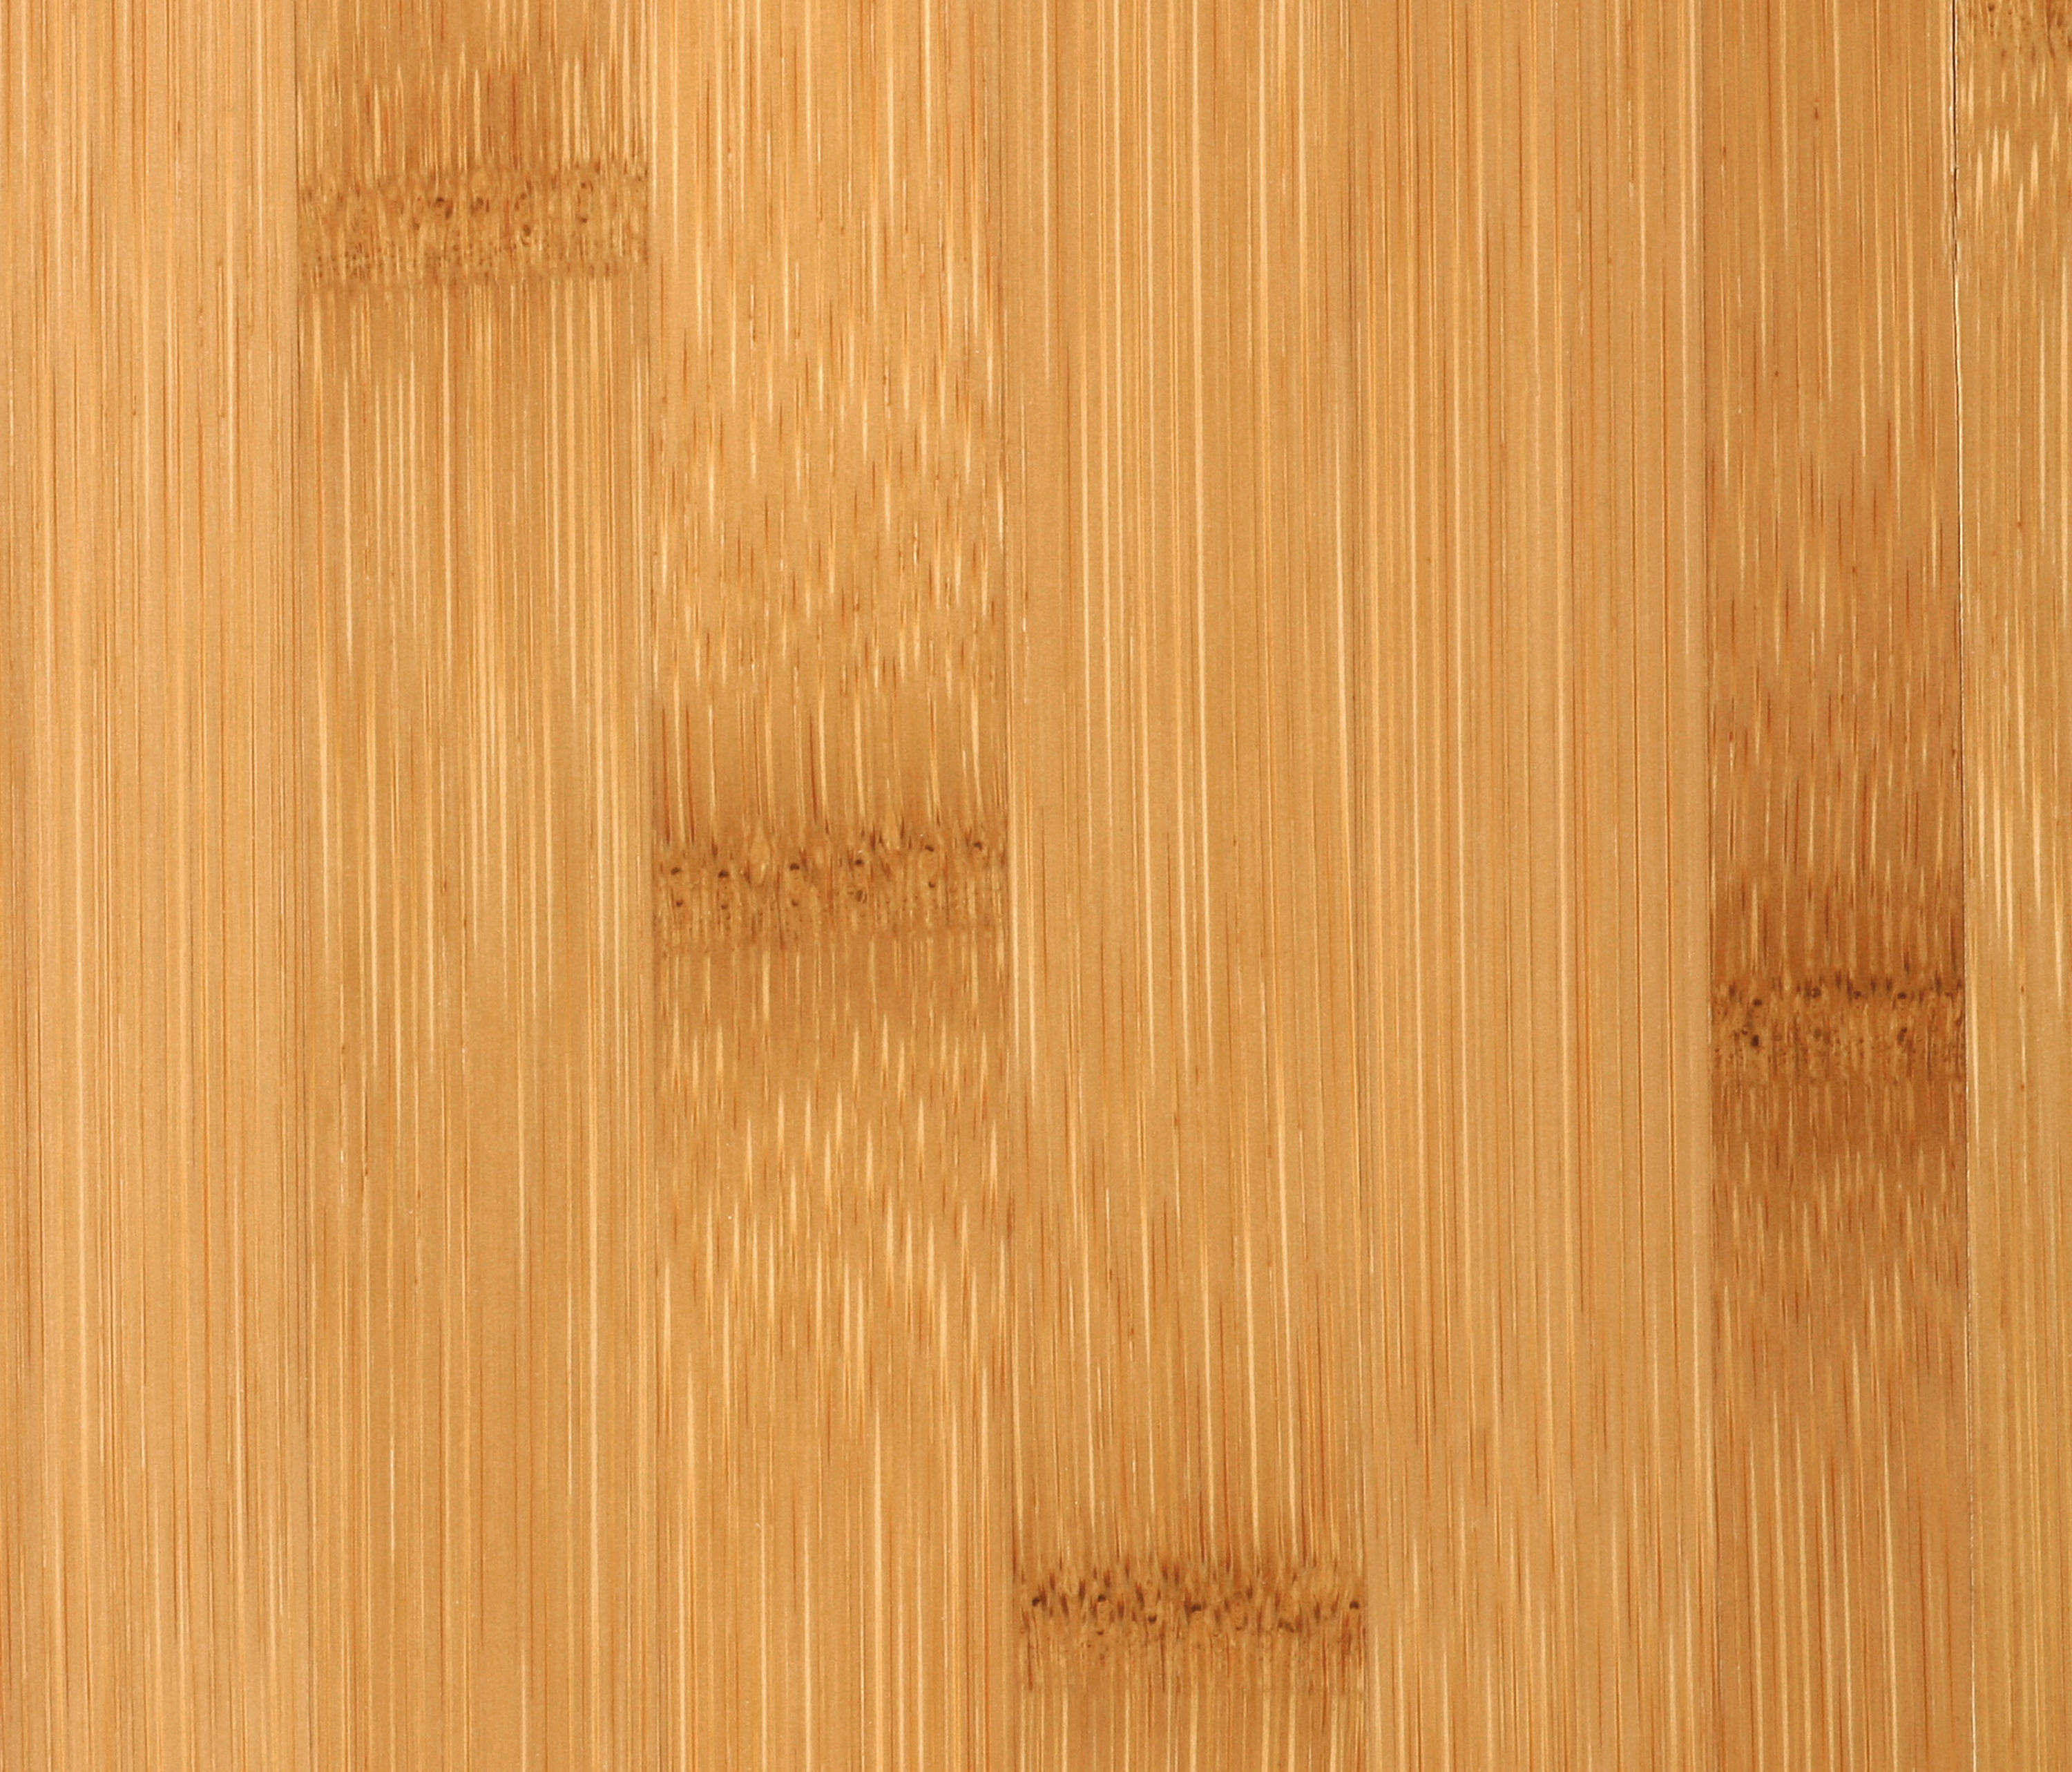 VENEER PLAINPRESSED CARAMEL Bamboo veneers from MOSO bamboo